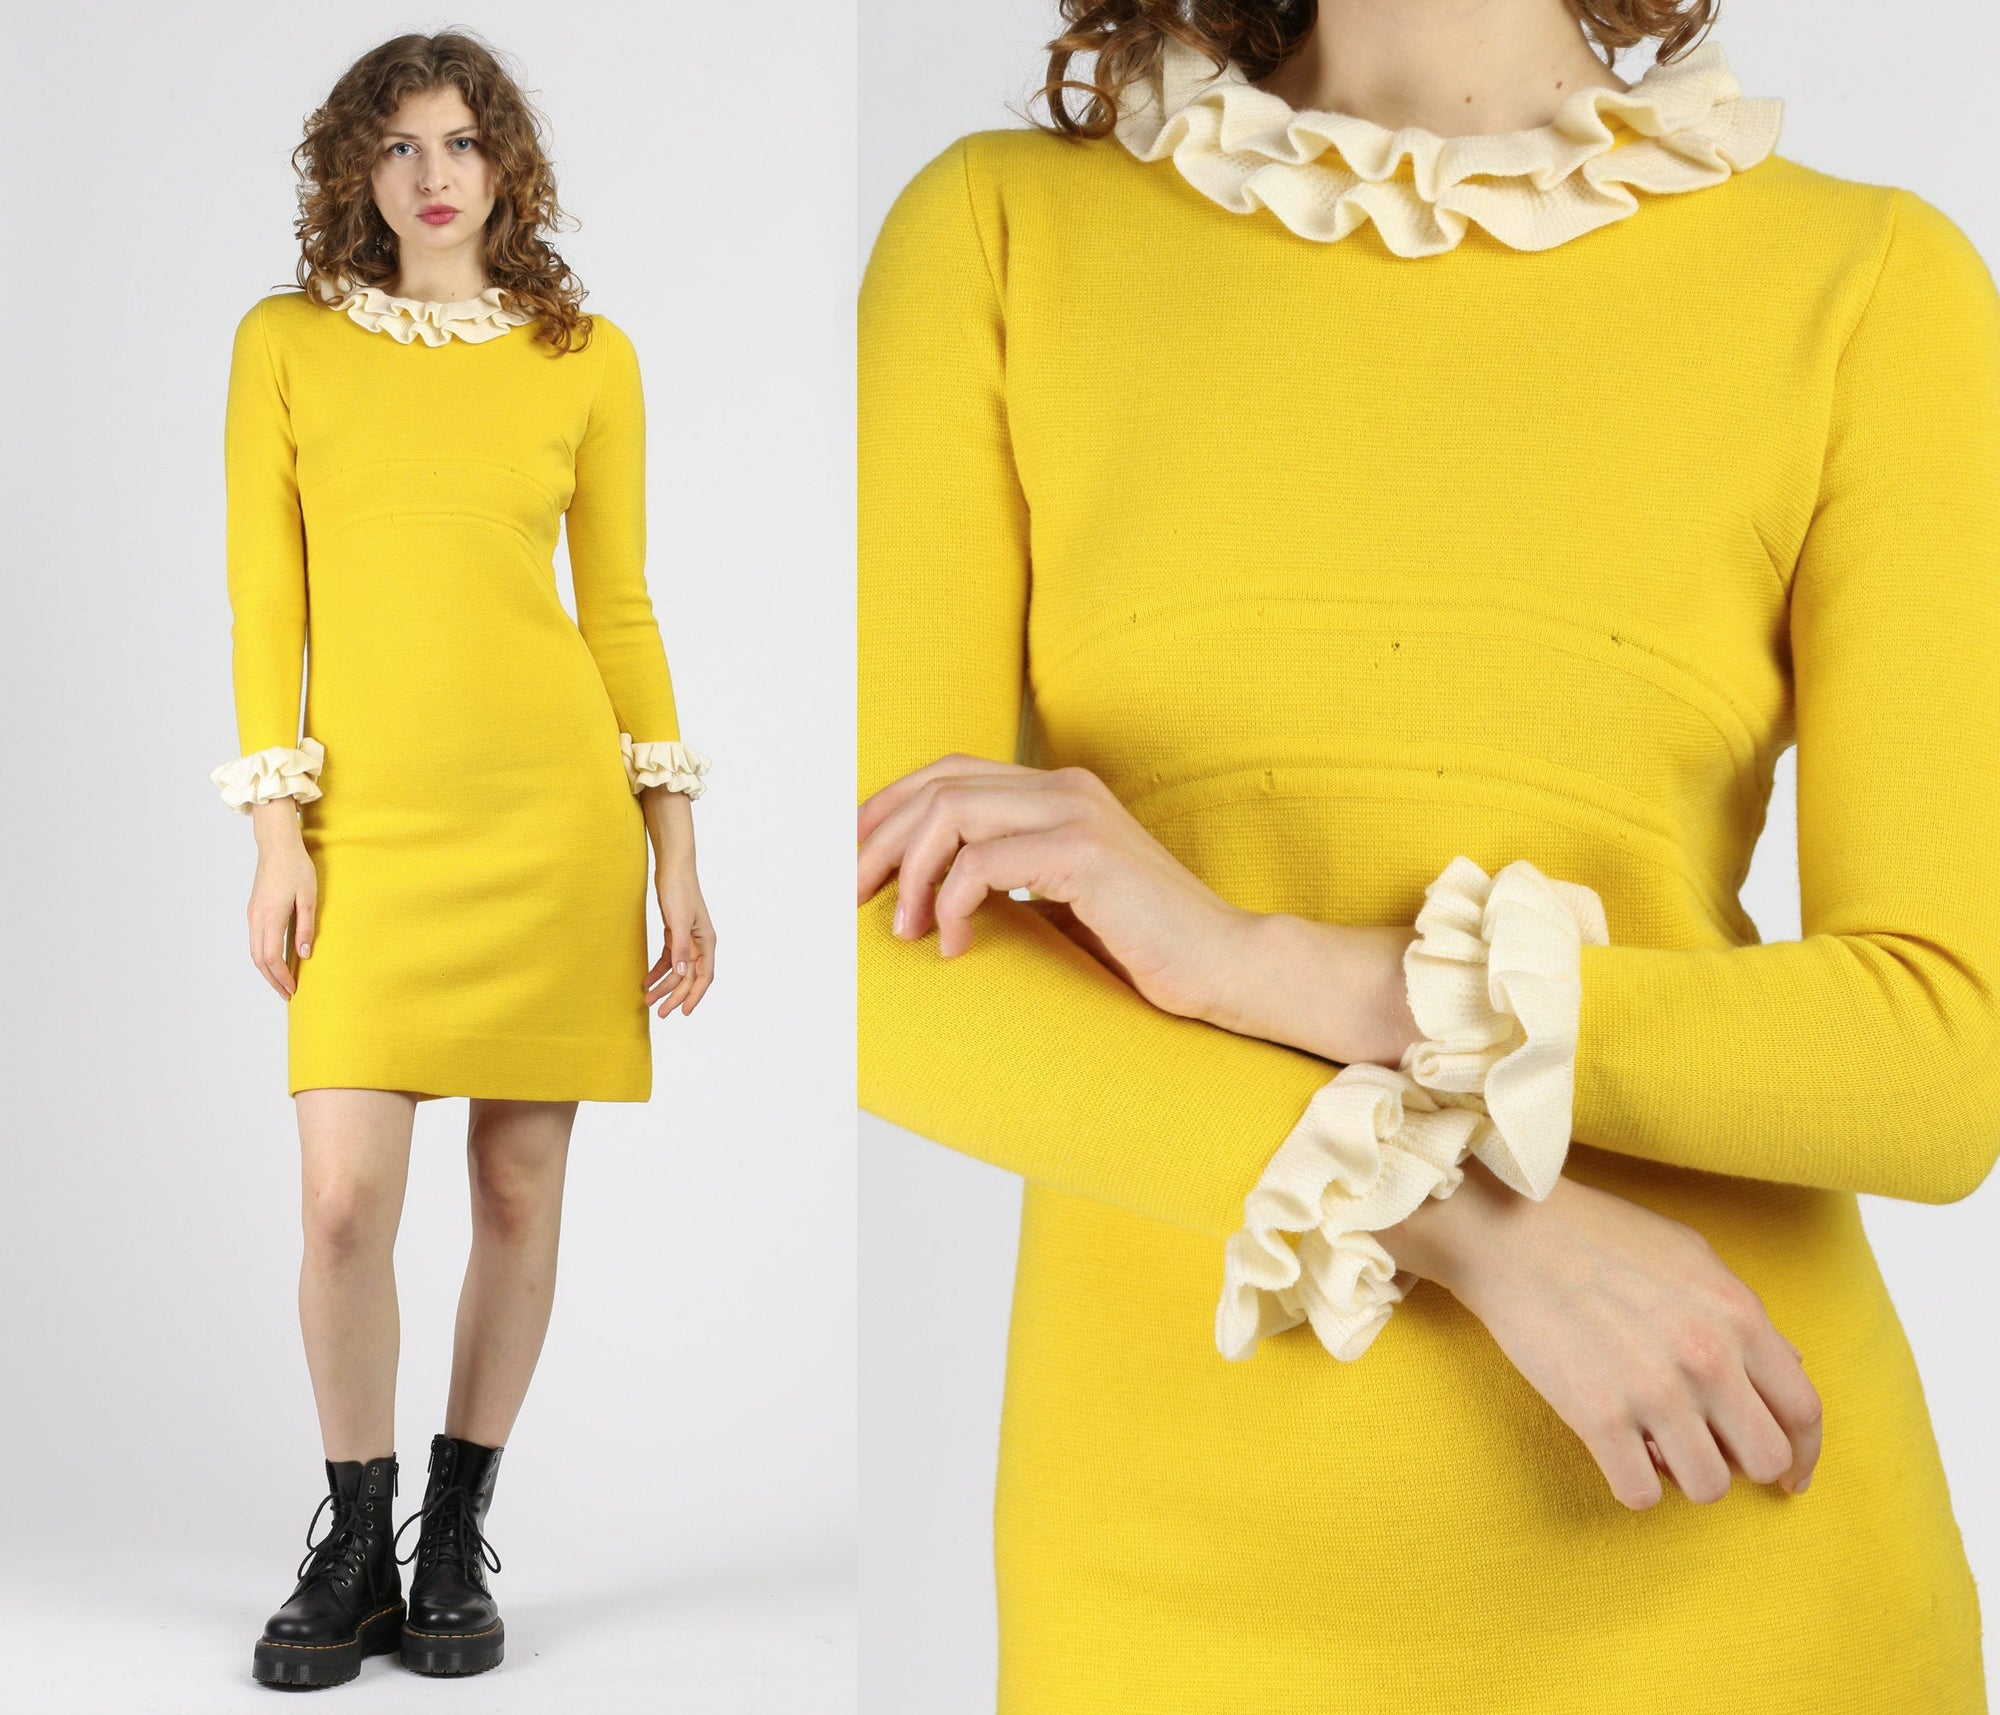 60s Mod Yellow & White Ruffle Knit Mini Dress - Small